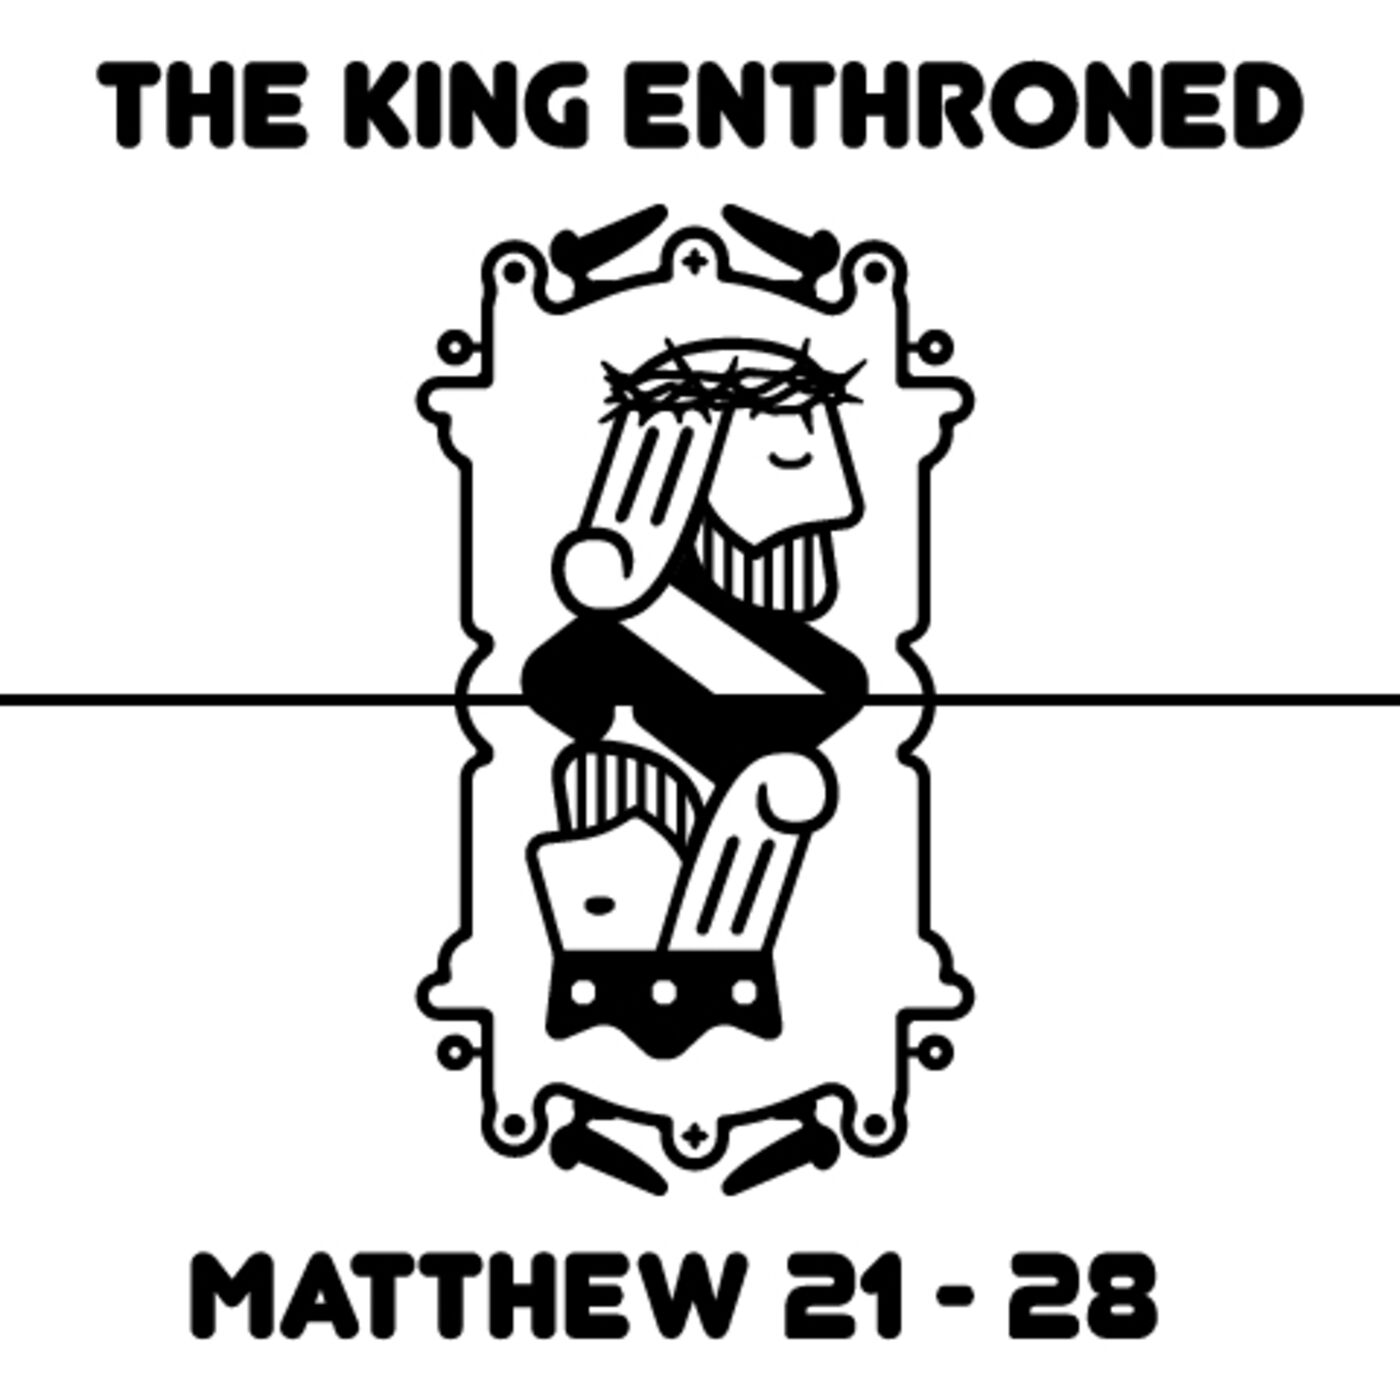 Matthew: The King's Return